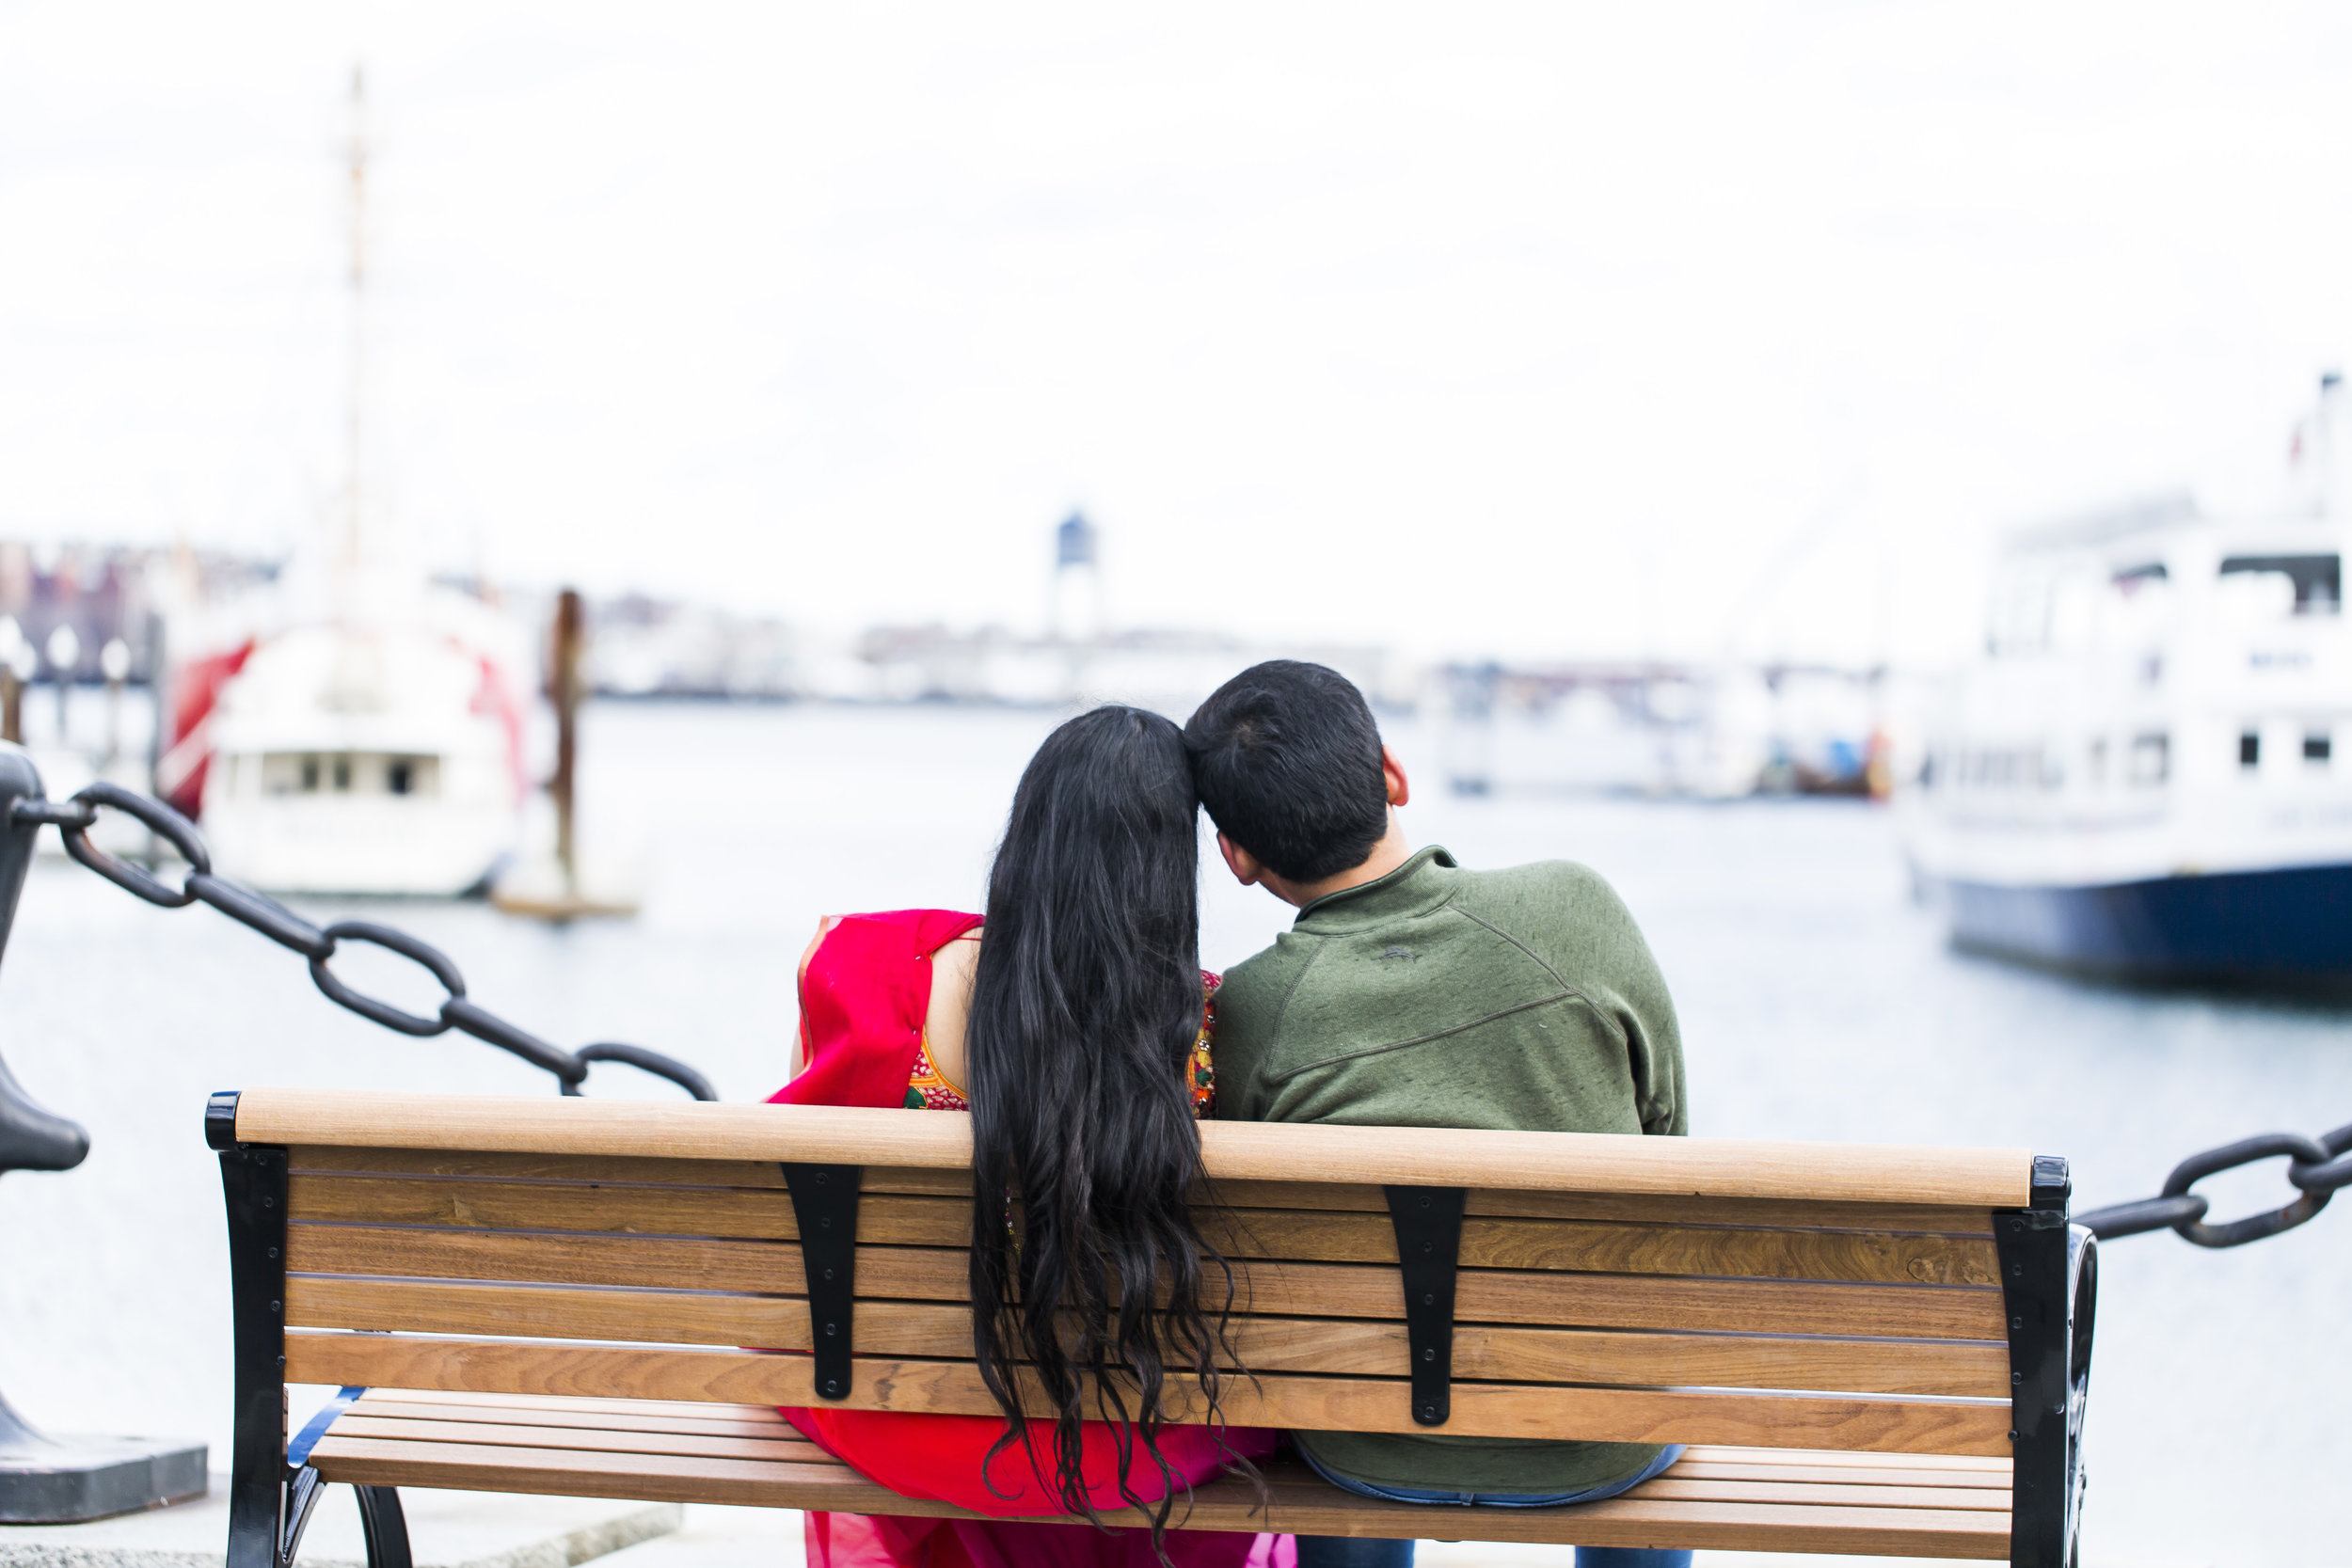 8C2A6622 Giovanni The Photographer Boston Engagment Photography Waterfront - Christopher Columbus Park - Public GardenPhotography School.jpg